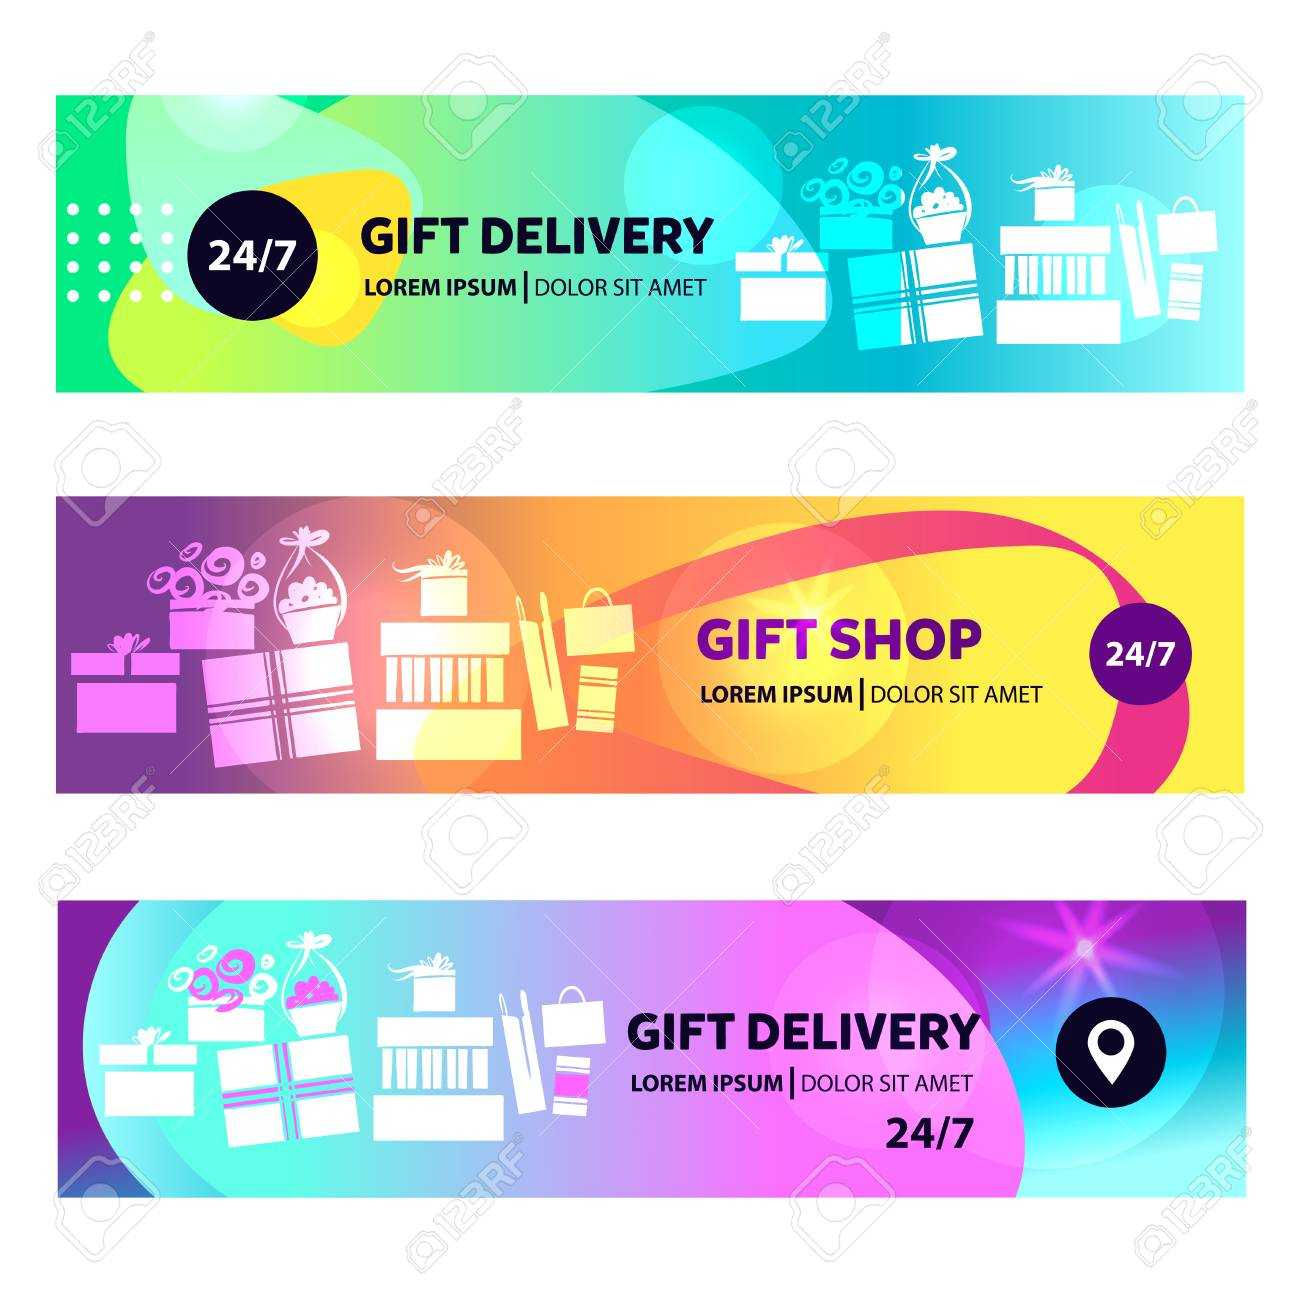 Template, Online Banner, Poster Design. Within Free Online Banner Templates